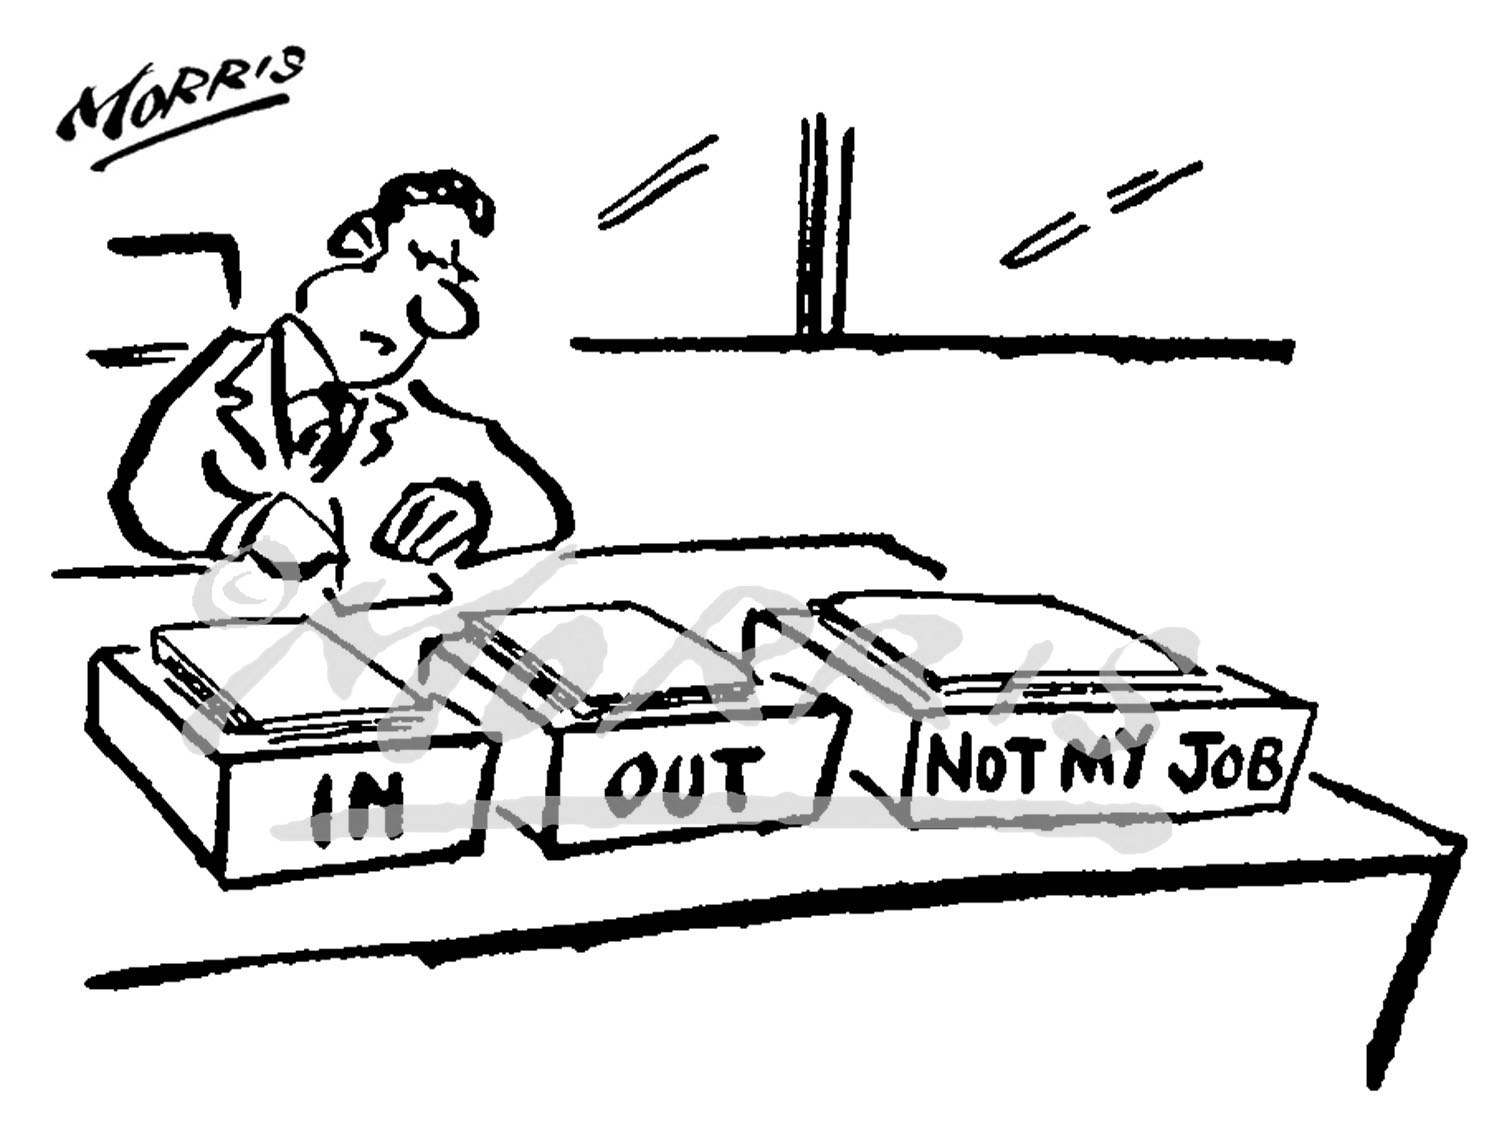 Office business comic cartoon Ref: 0344bw